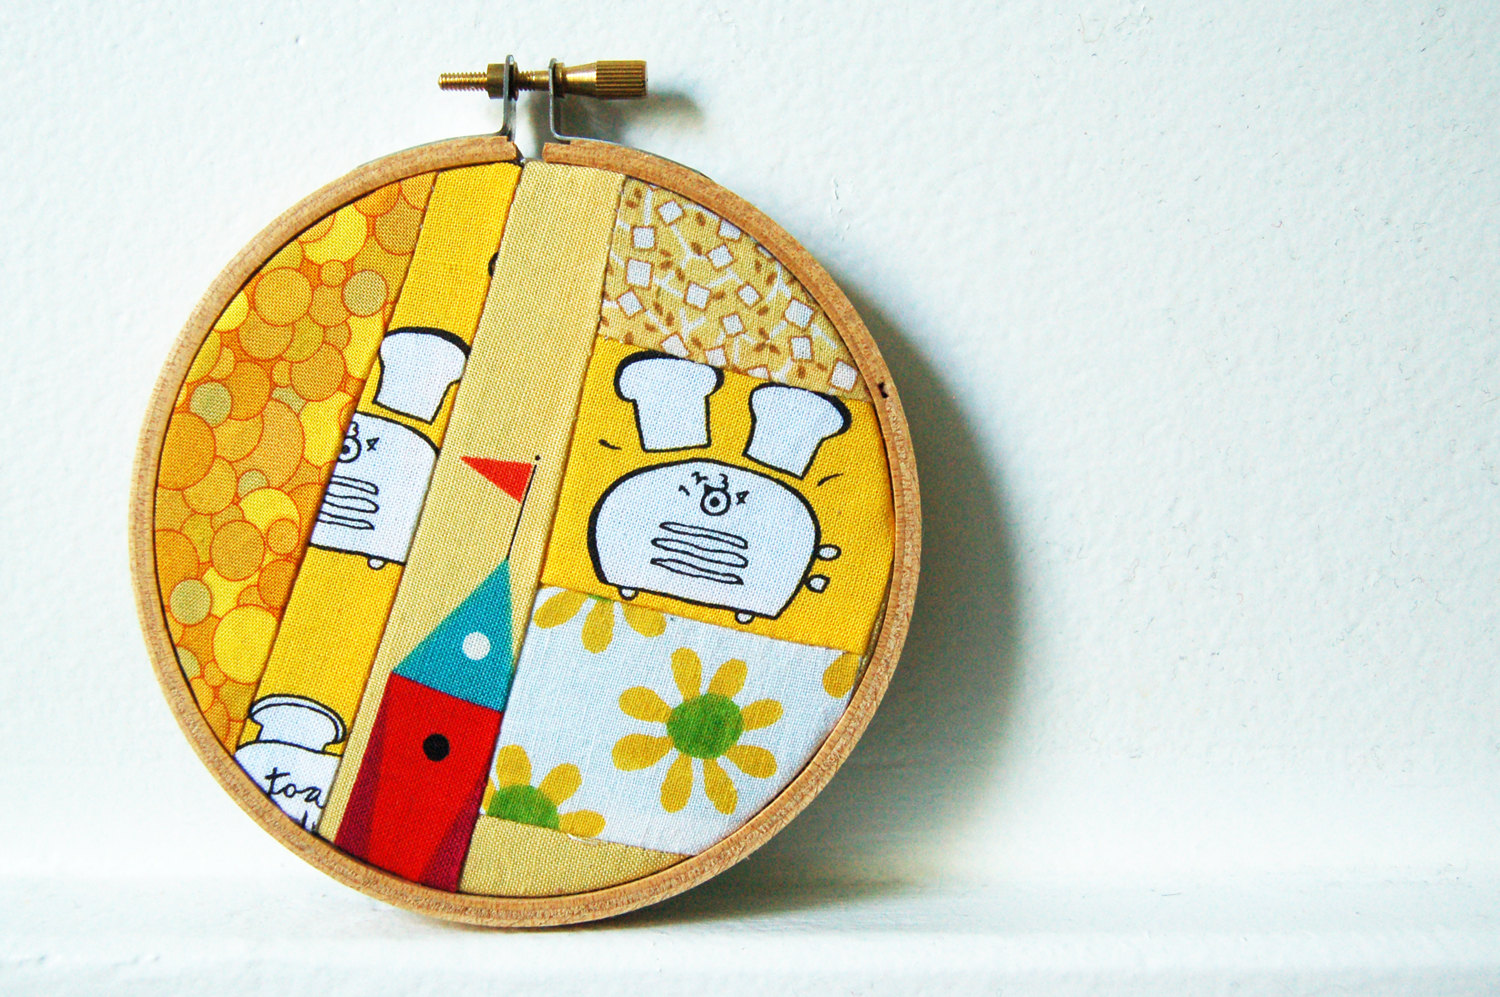 Embroidery Hoop Wall Art. Patchwork Fabric Circle. Whimsical Yellow ...